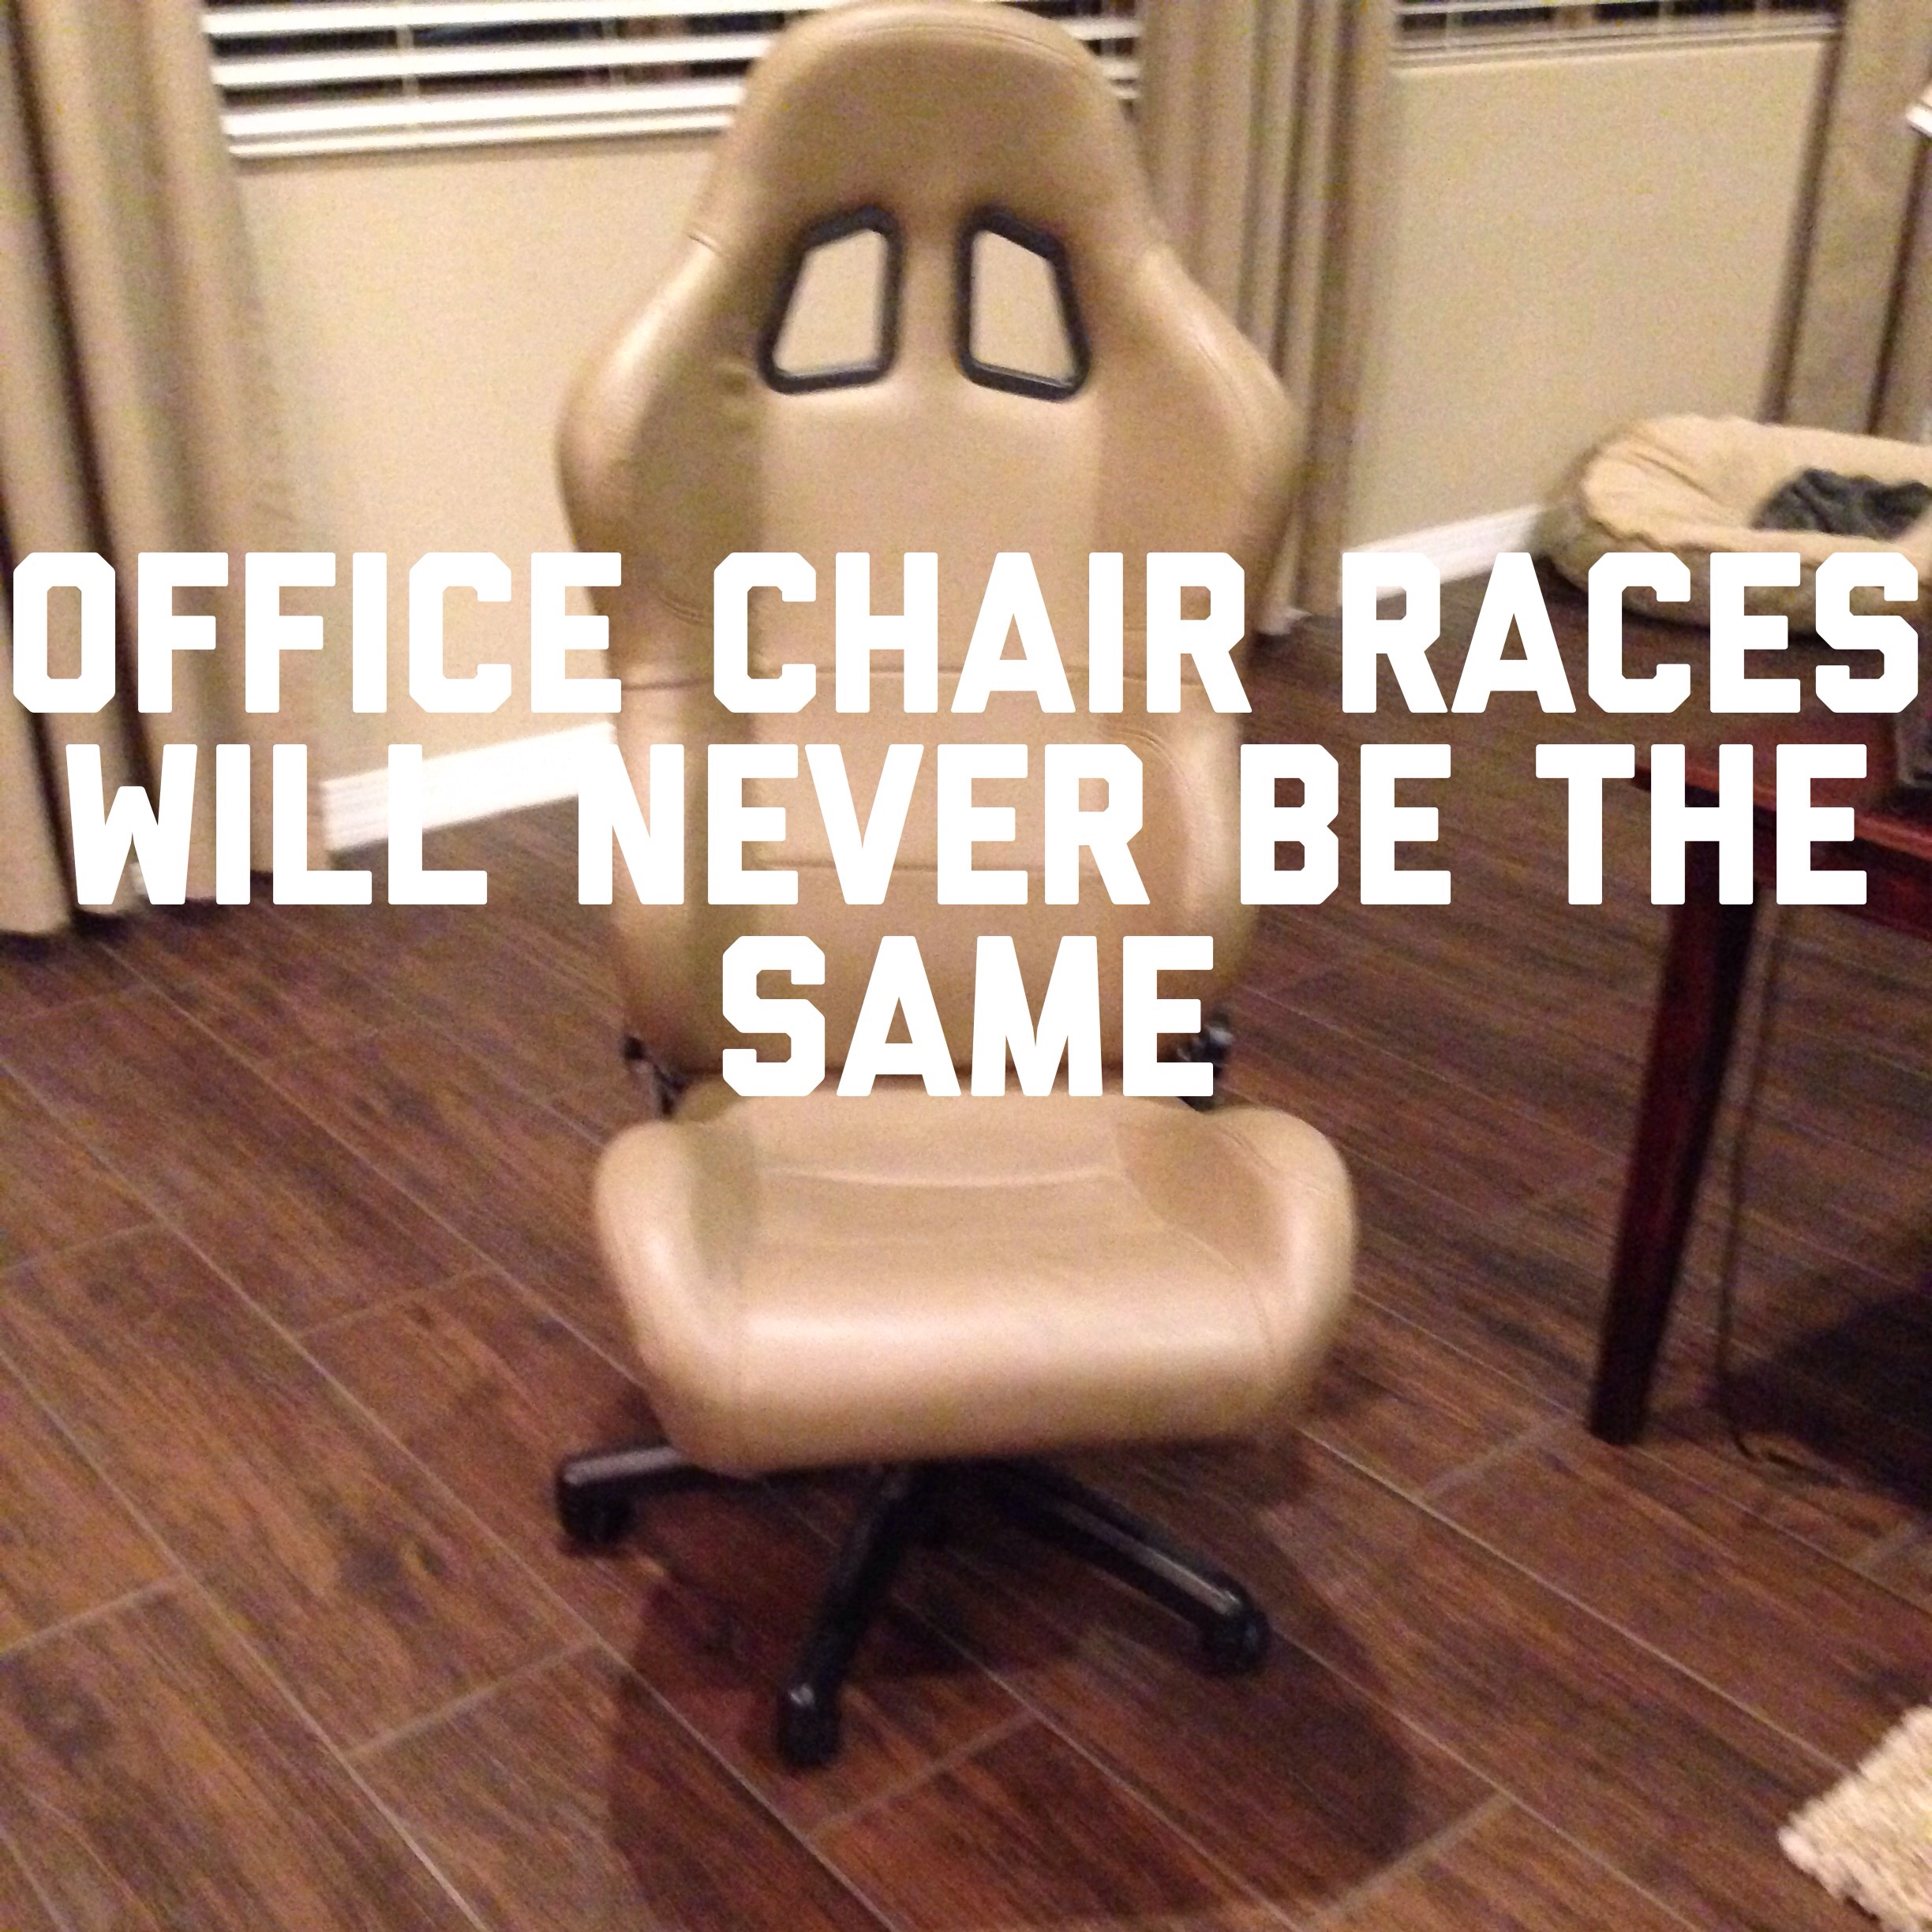 So I M Turning My Old Race Seat Into An Office Chair